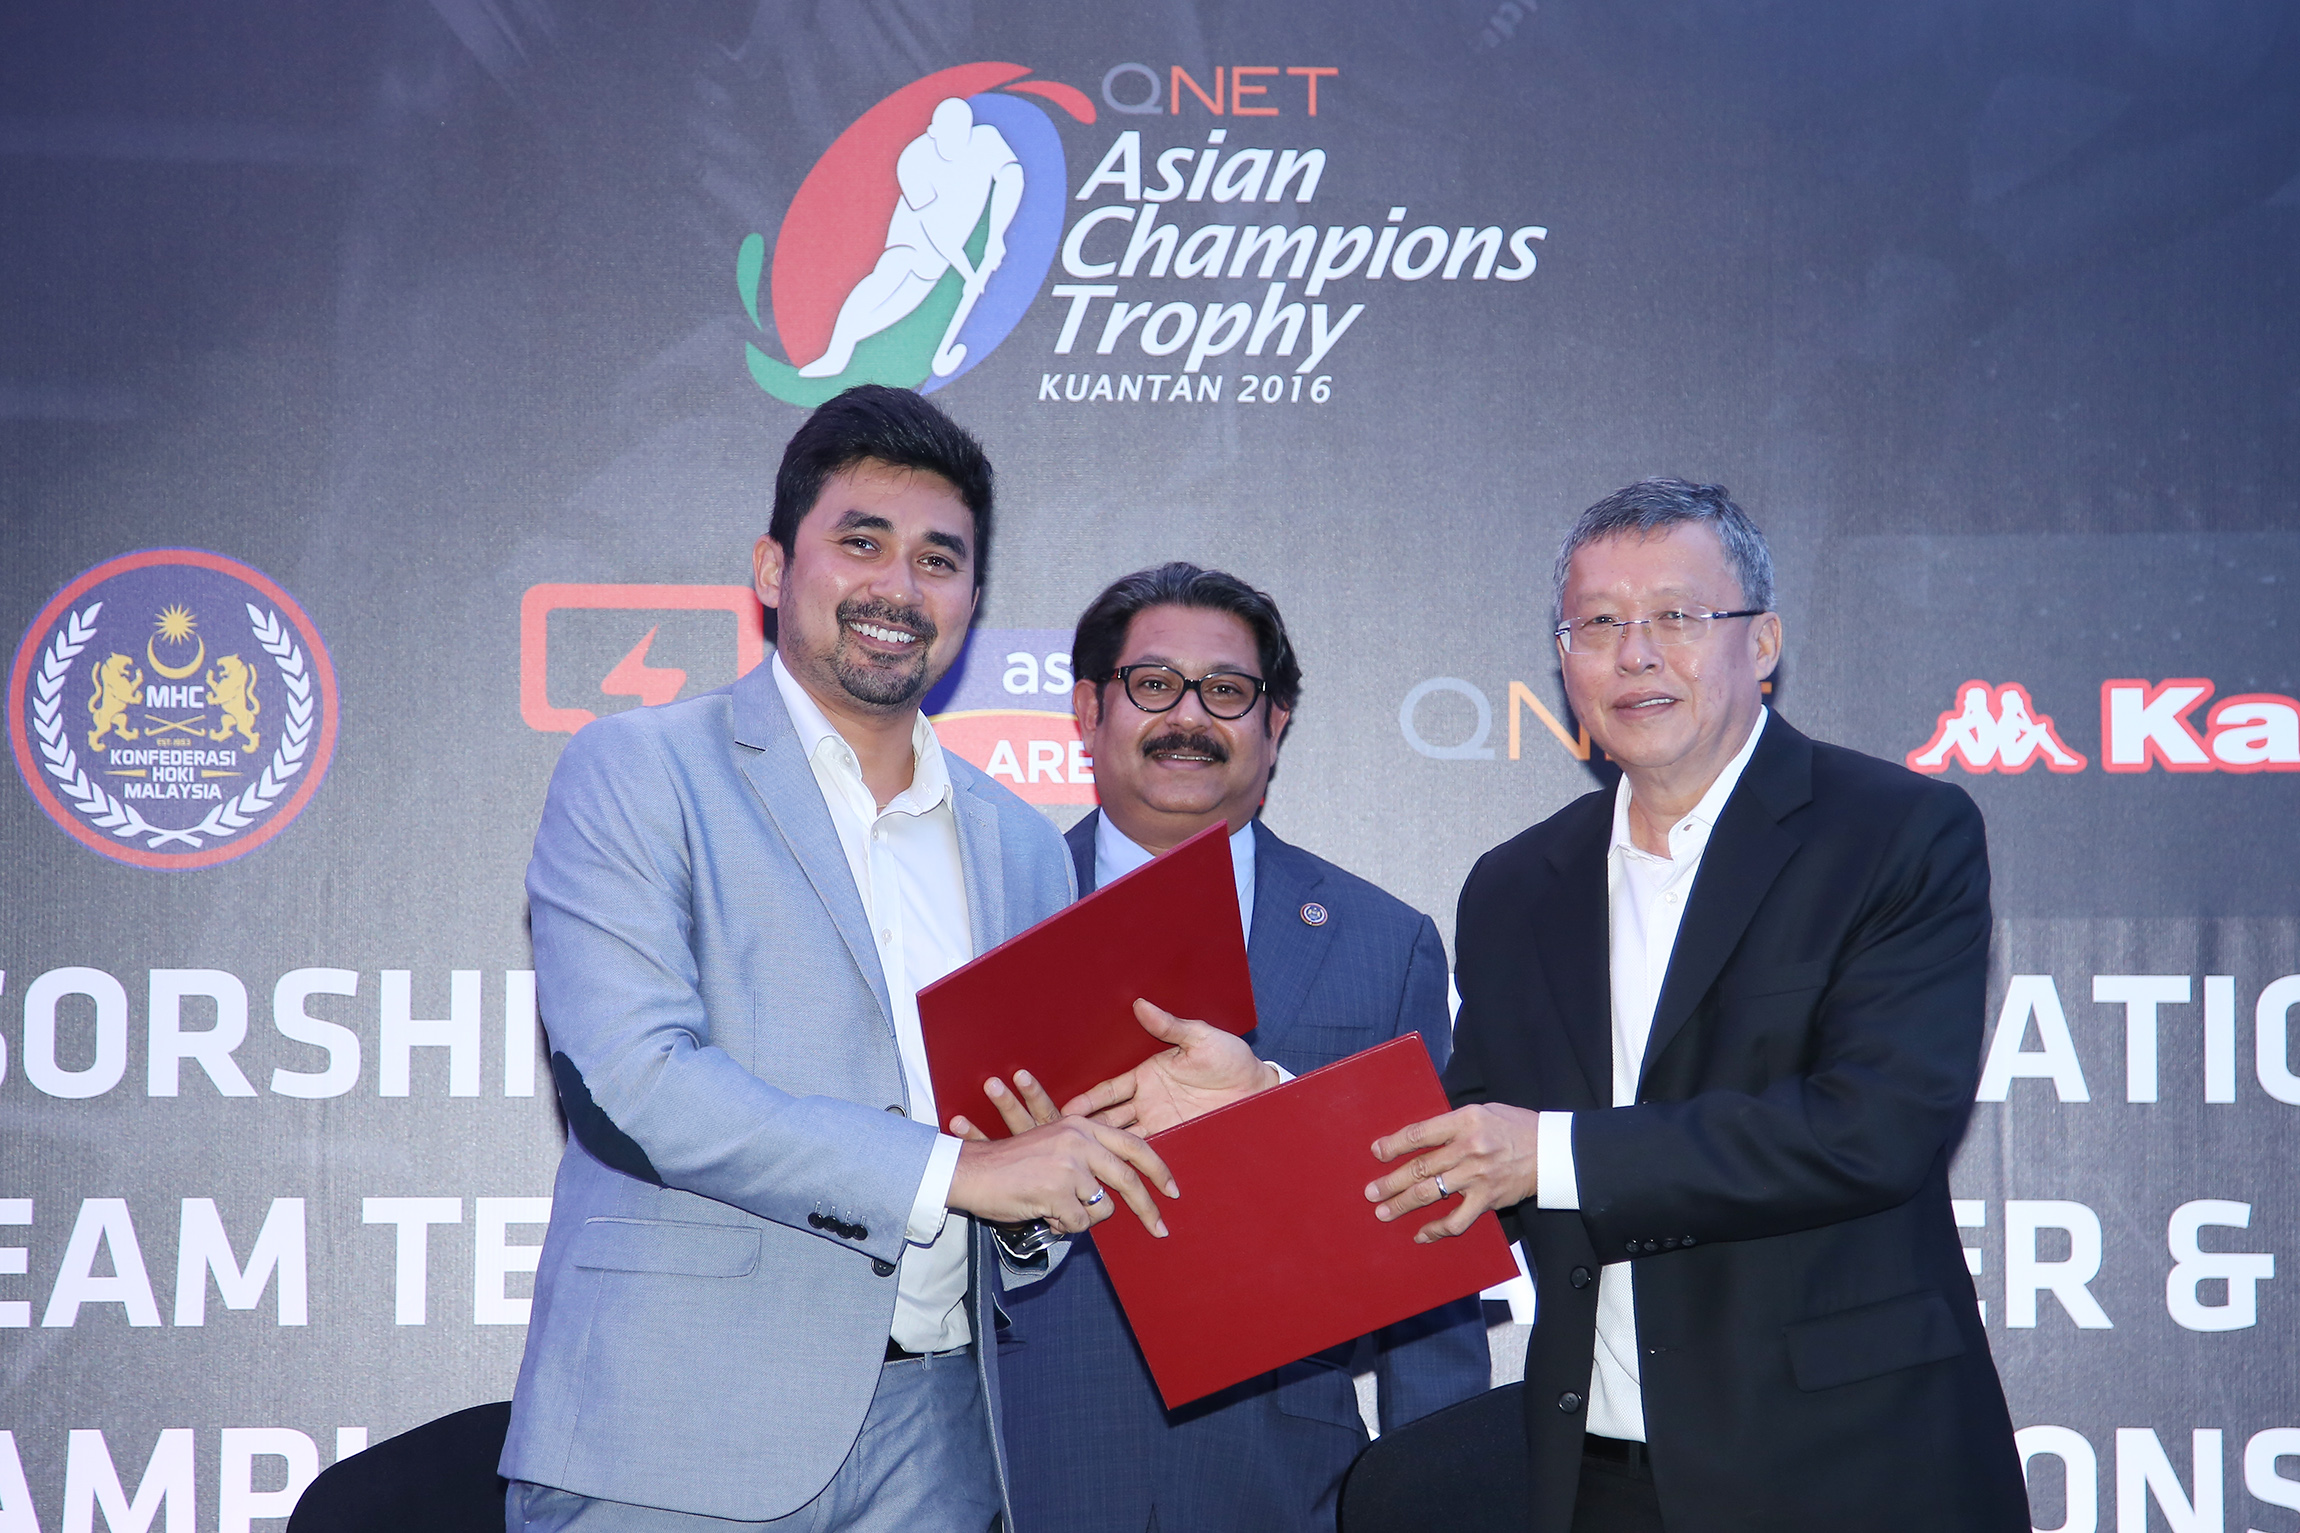 MHC Chief Executive Officer, Logan Raj (left) exchanging the MoU documents with Mohd Afiq Tam Abdullah (right), Managing Director of Novature Sdn Bhd (Kappa Malaysia) as MHC President, Dato' Sri Subahan Kamal looks on during the Sponsorship of Malaysia National Team Technical Partner & Asian Championship Trophy Sponsorship Presentation in Kuala Lumpur today.